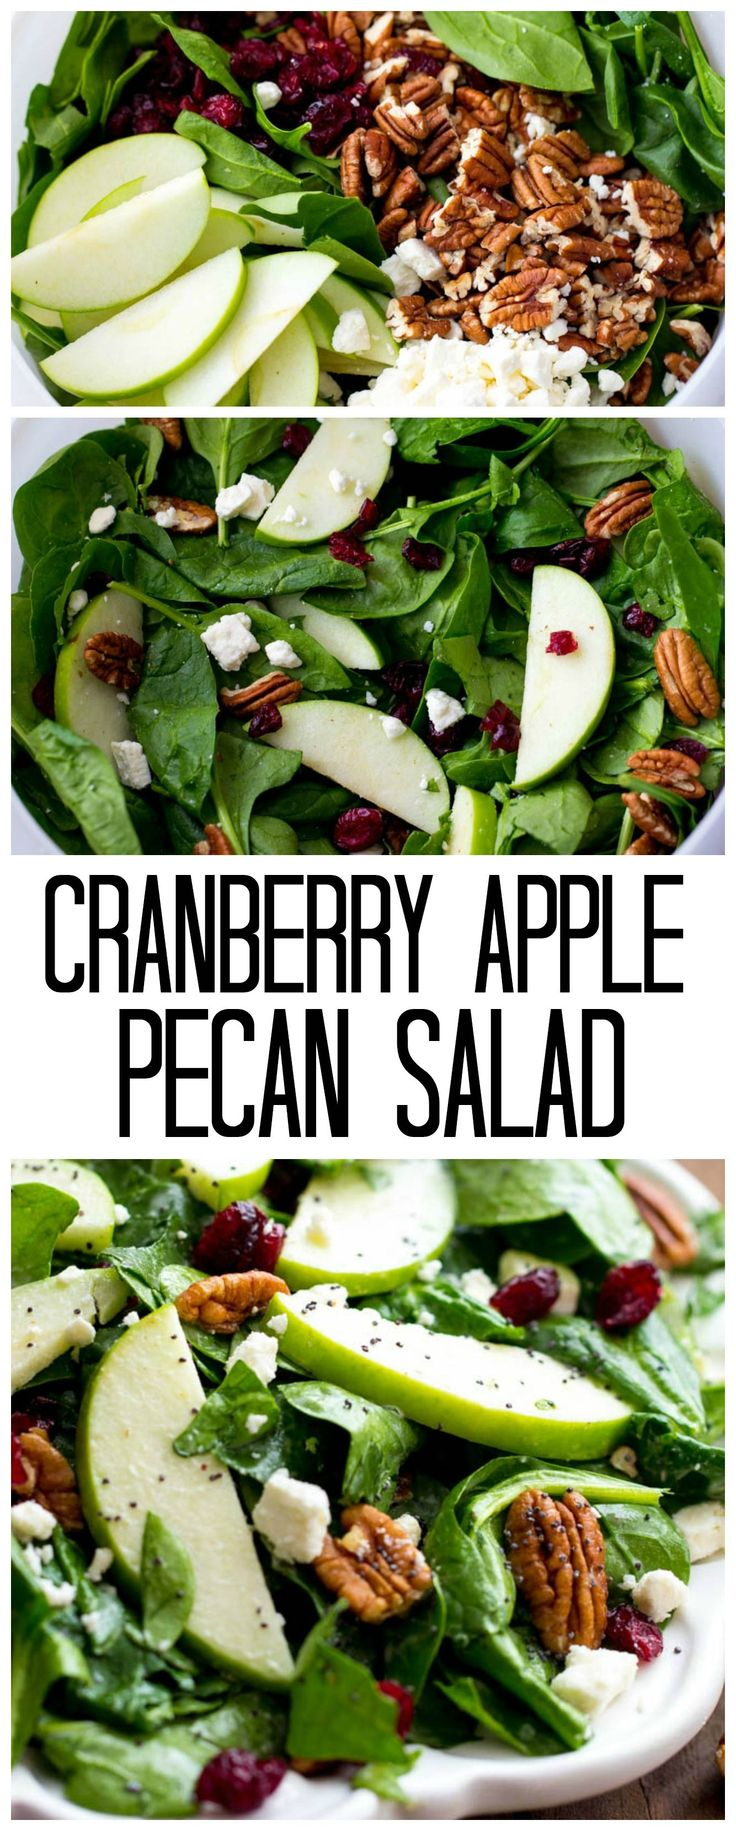 This Cranberry Apple Pecan Salad is perfect for the holidays and has so many amazing flavors! The creamy poppyseed dressing is the absolute best!